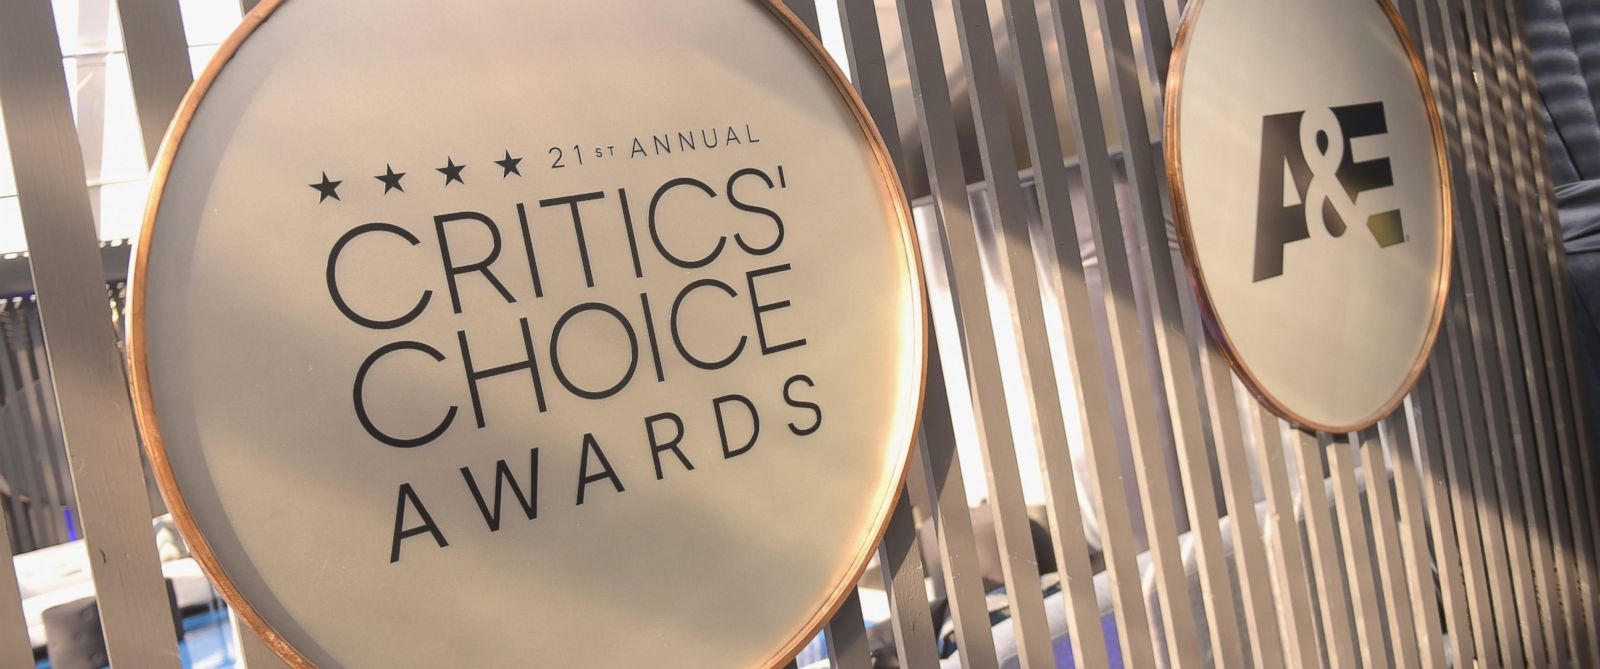 PHOTO: Signage for the 21st annual Critics Choice Awards and A&E are displayed at the 21st annual Critics Choice Awards at Barker Hangar, Jan. 17, 2016, in Santa Monica, California.